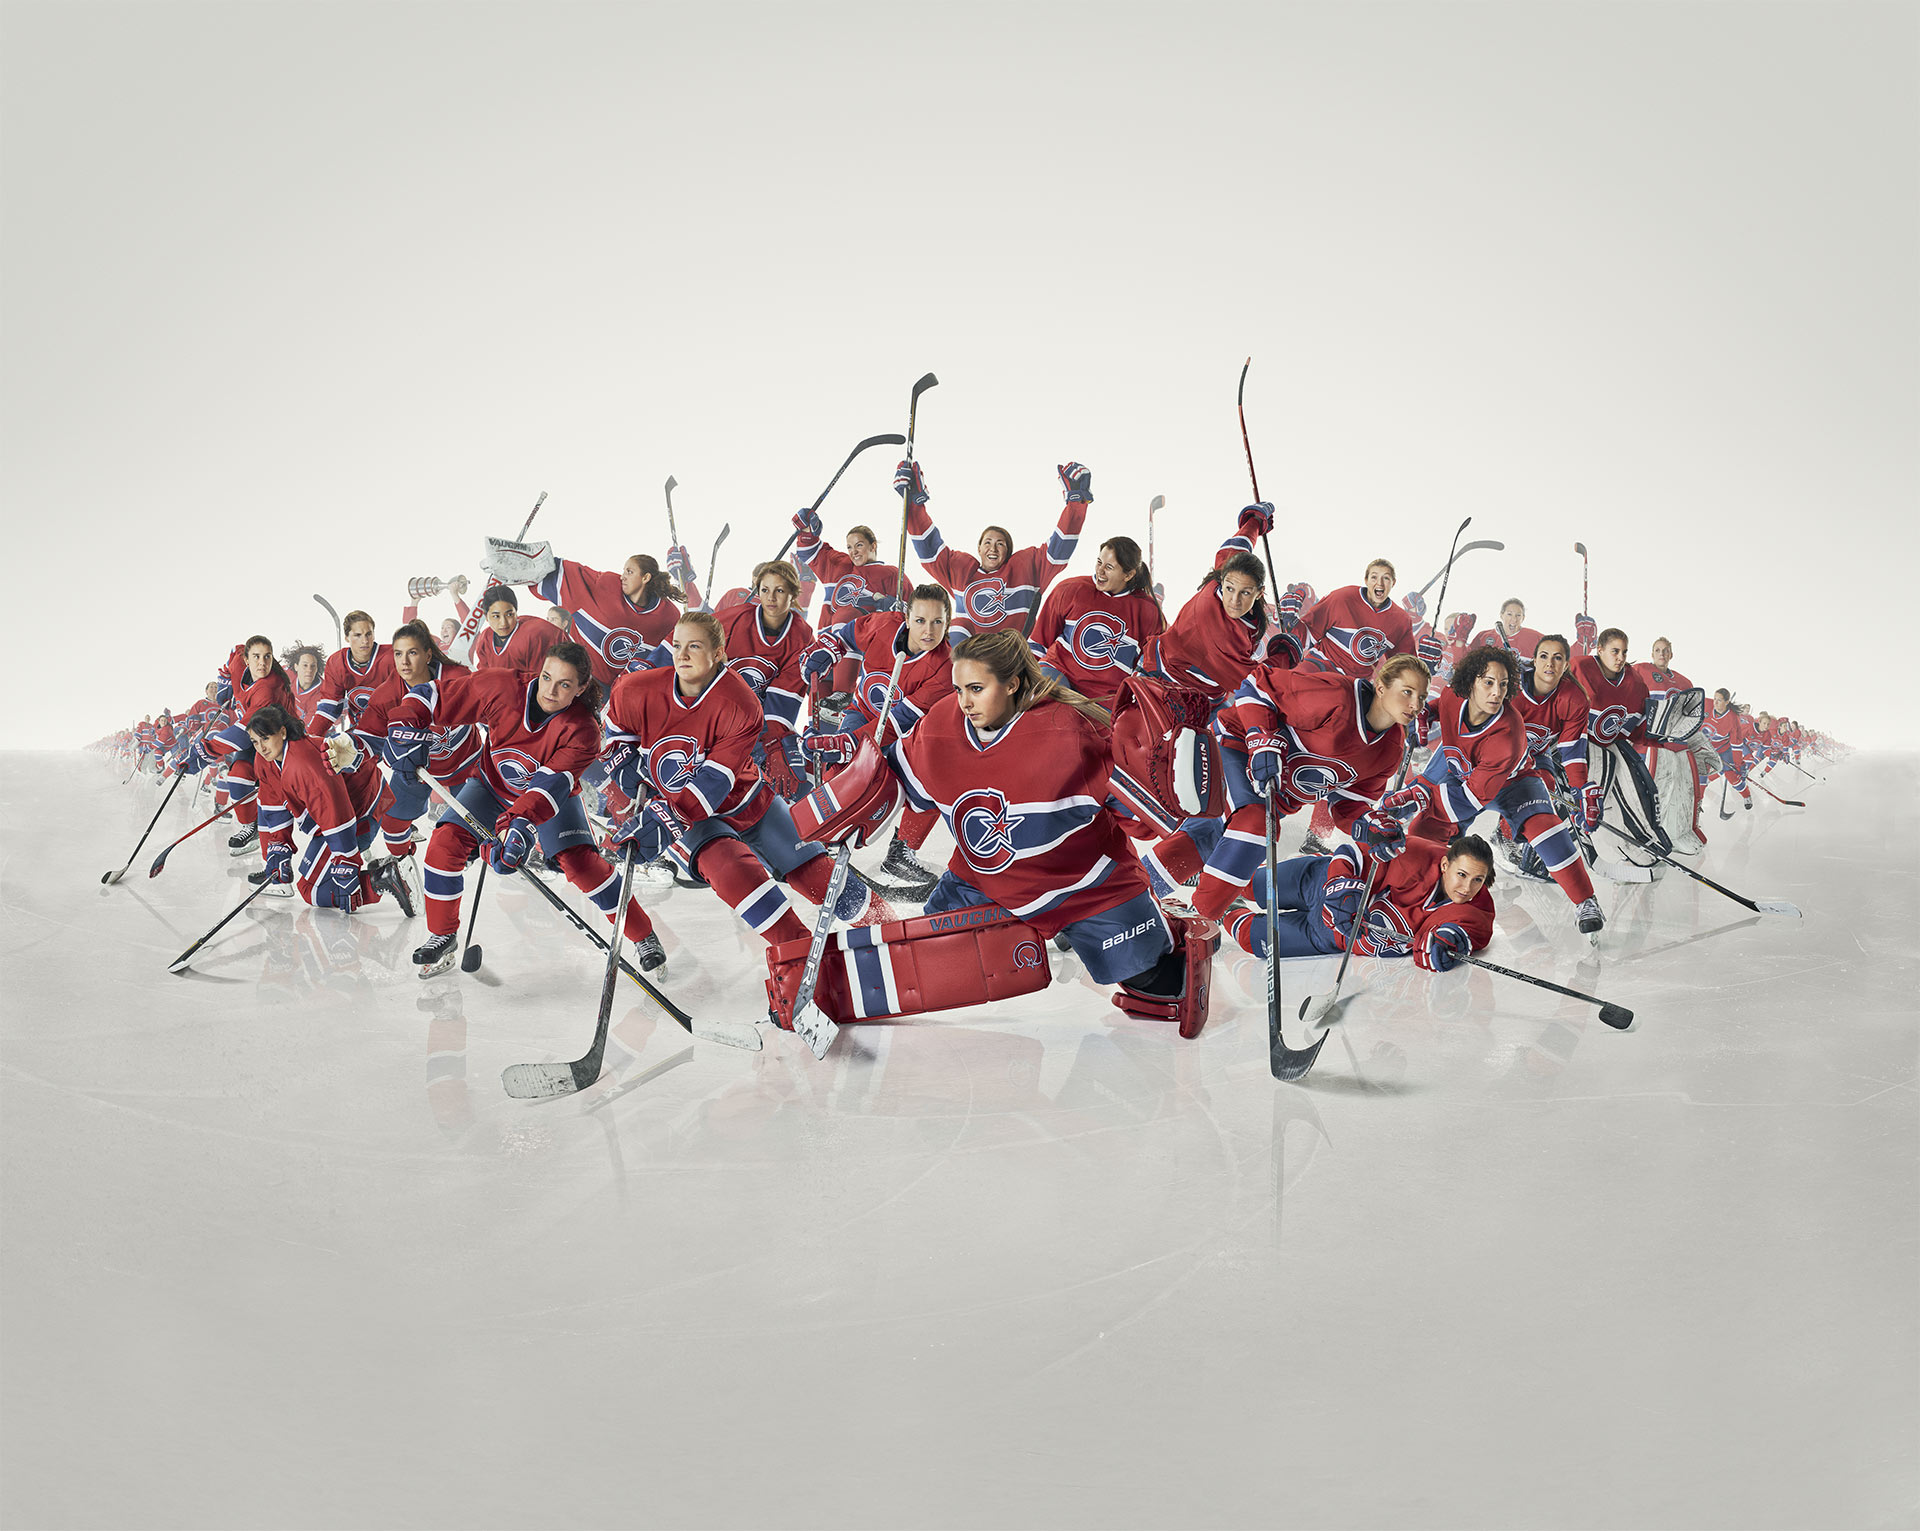 Les Canadiennes de Montréal 2017 team photo